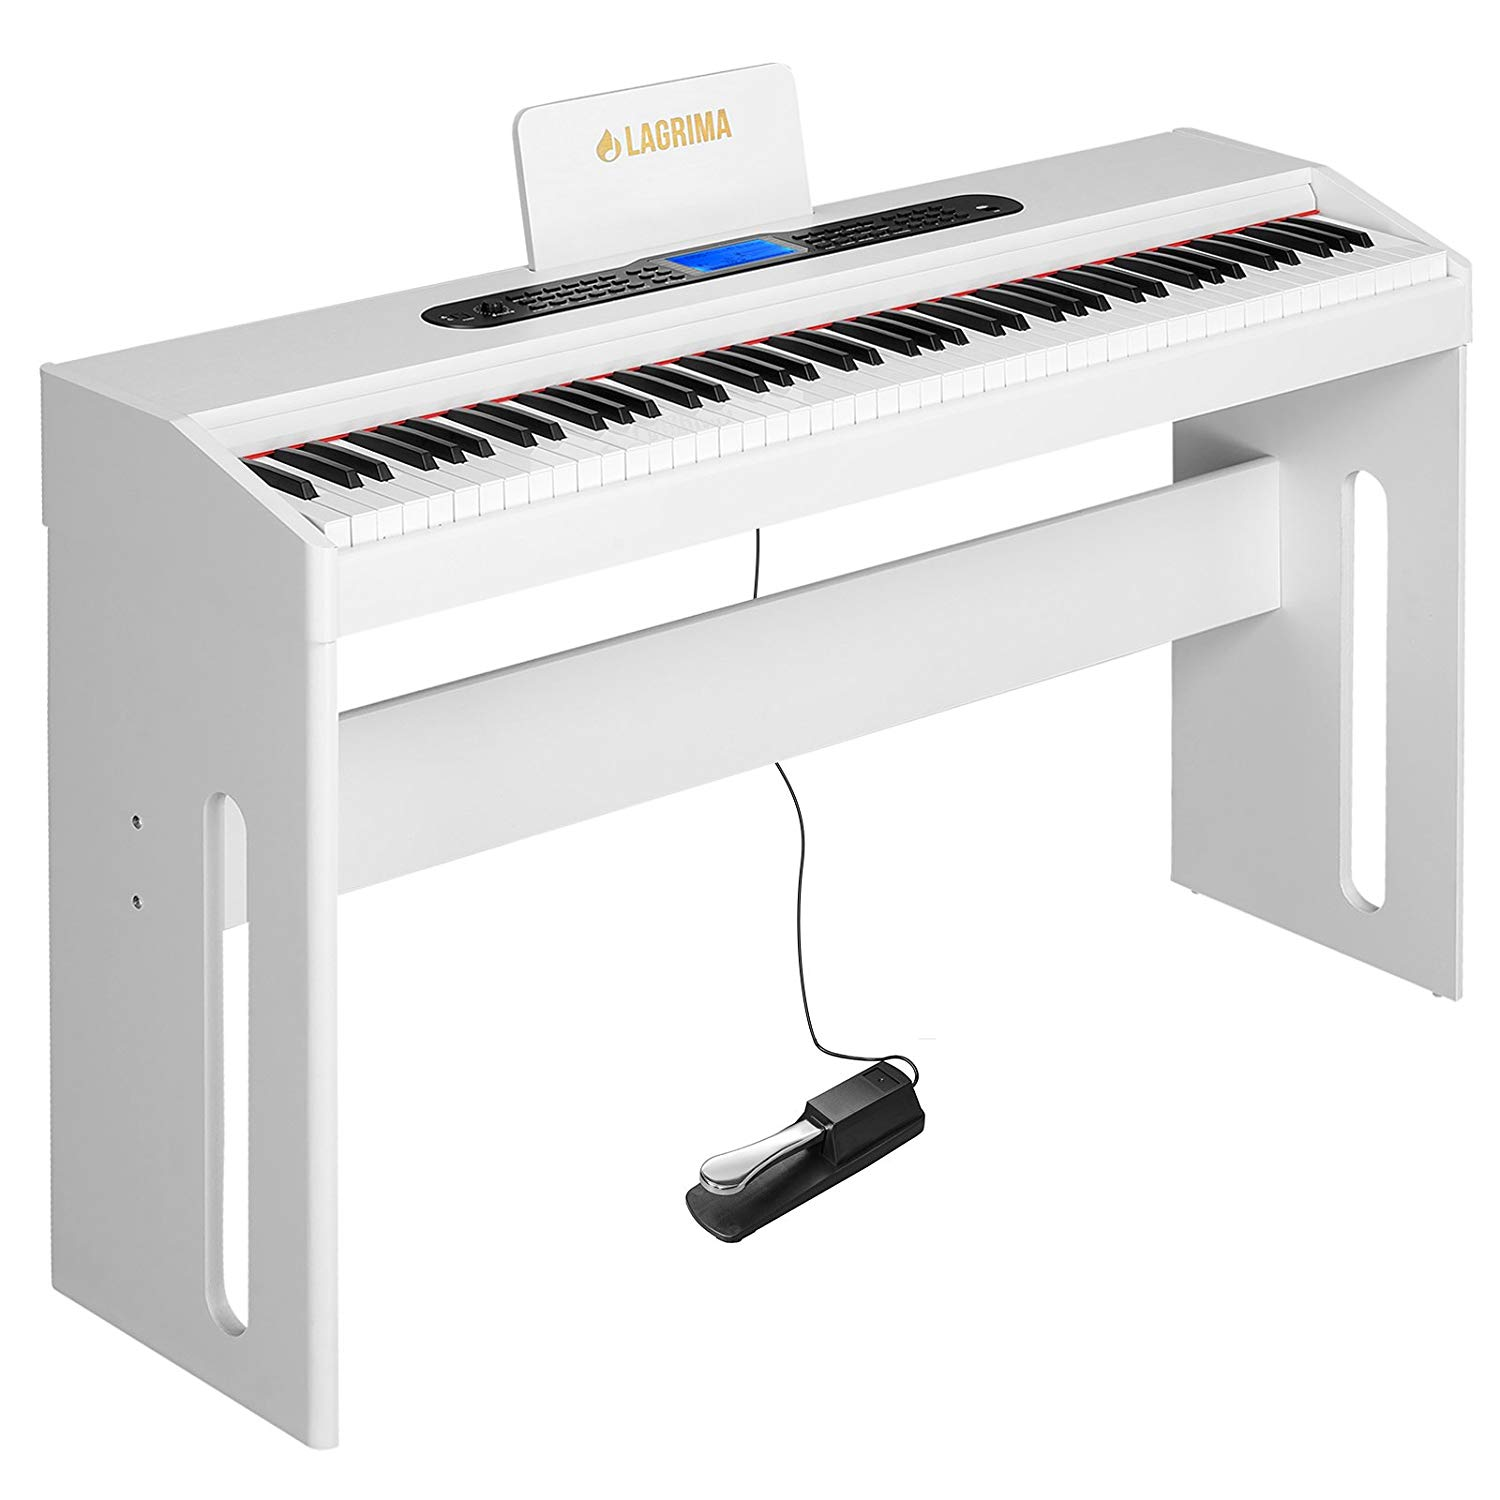 LAGRIMA Digital Piano_4